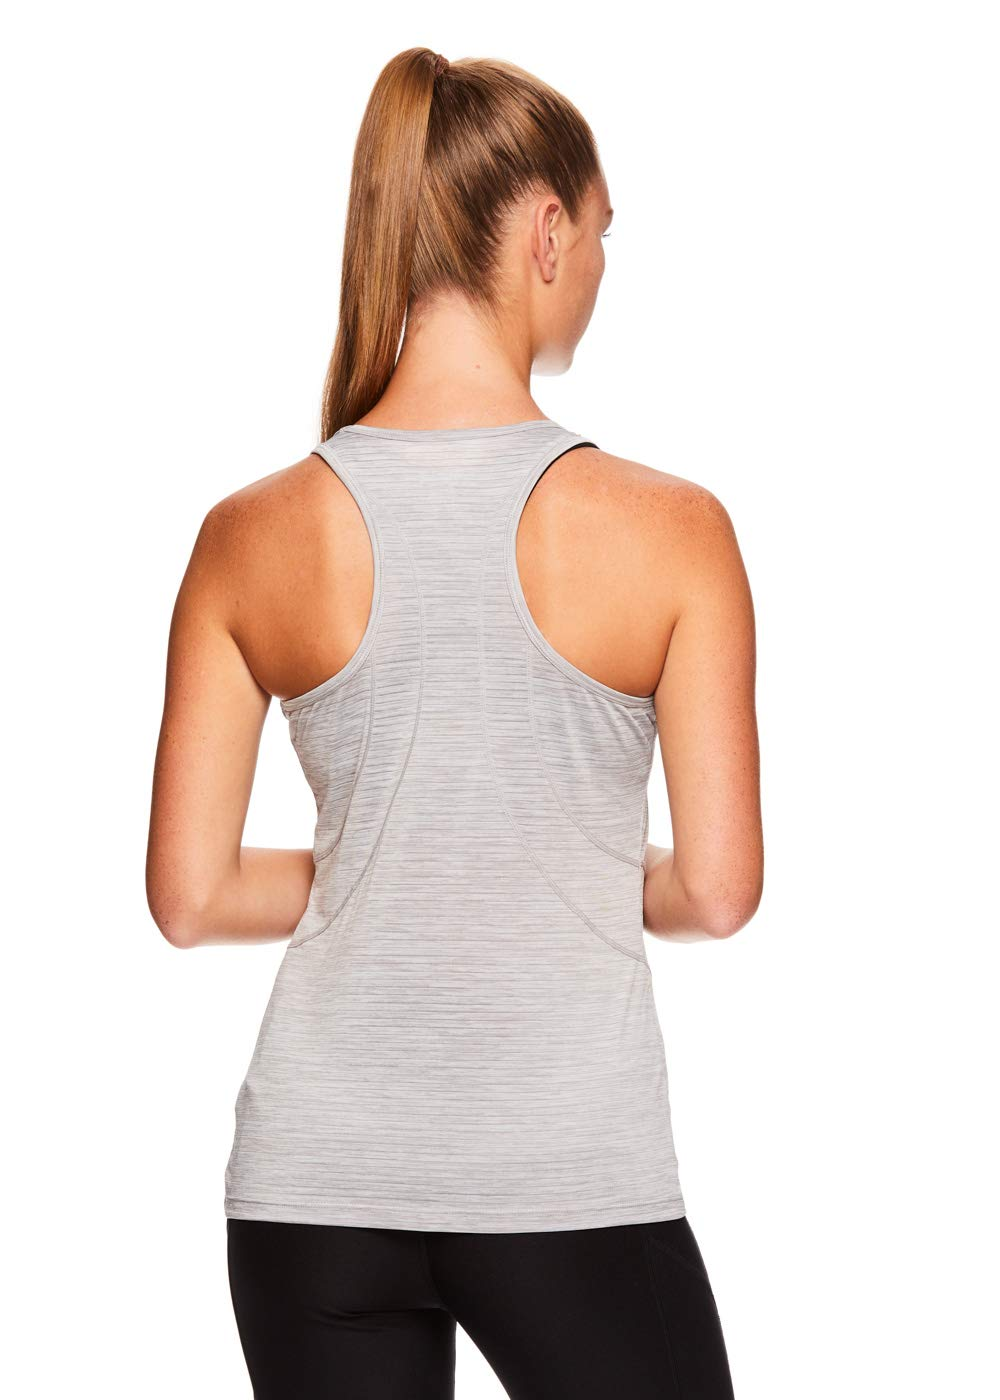 Reebok Women's Dynamic Fitted Performance Racerback Tank Top - Silver Sconce Heather, Small by Reebok (Image #3)